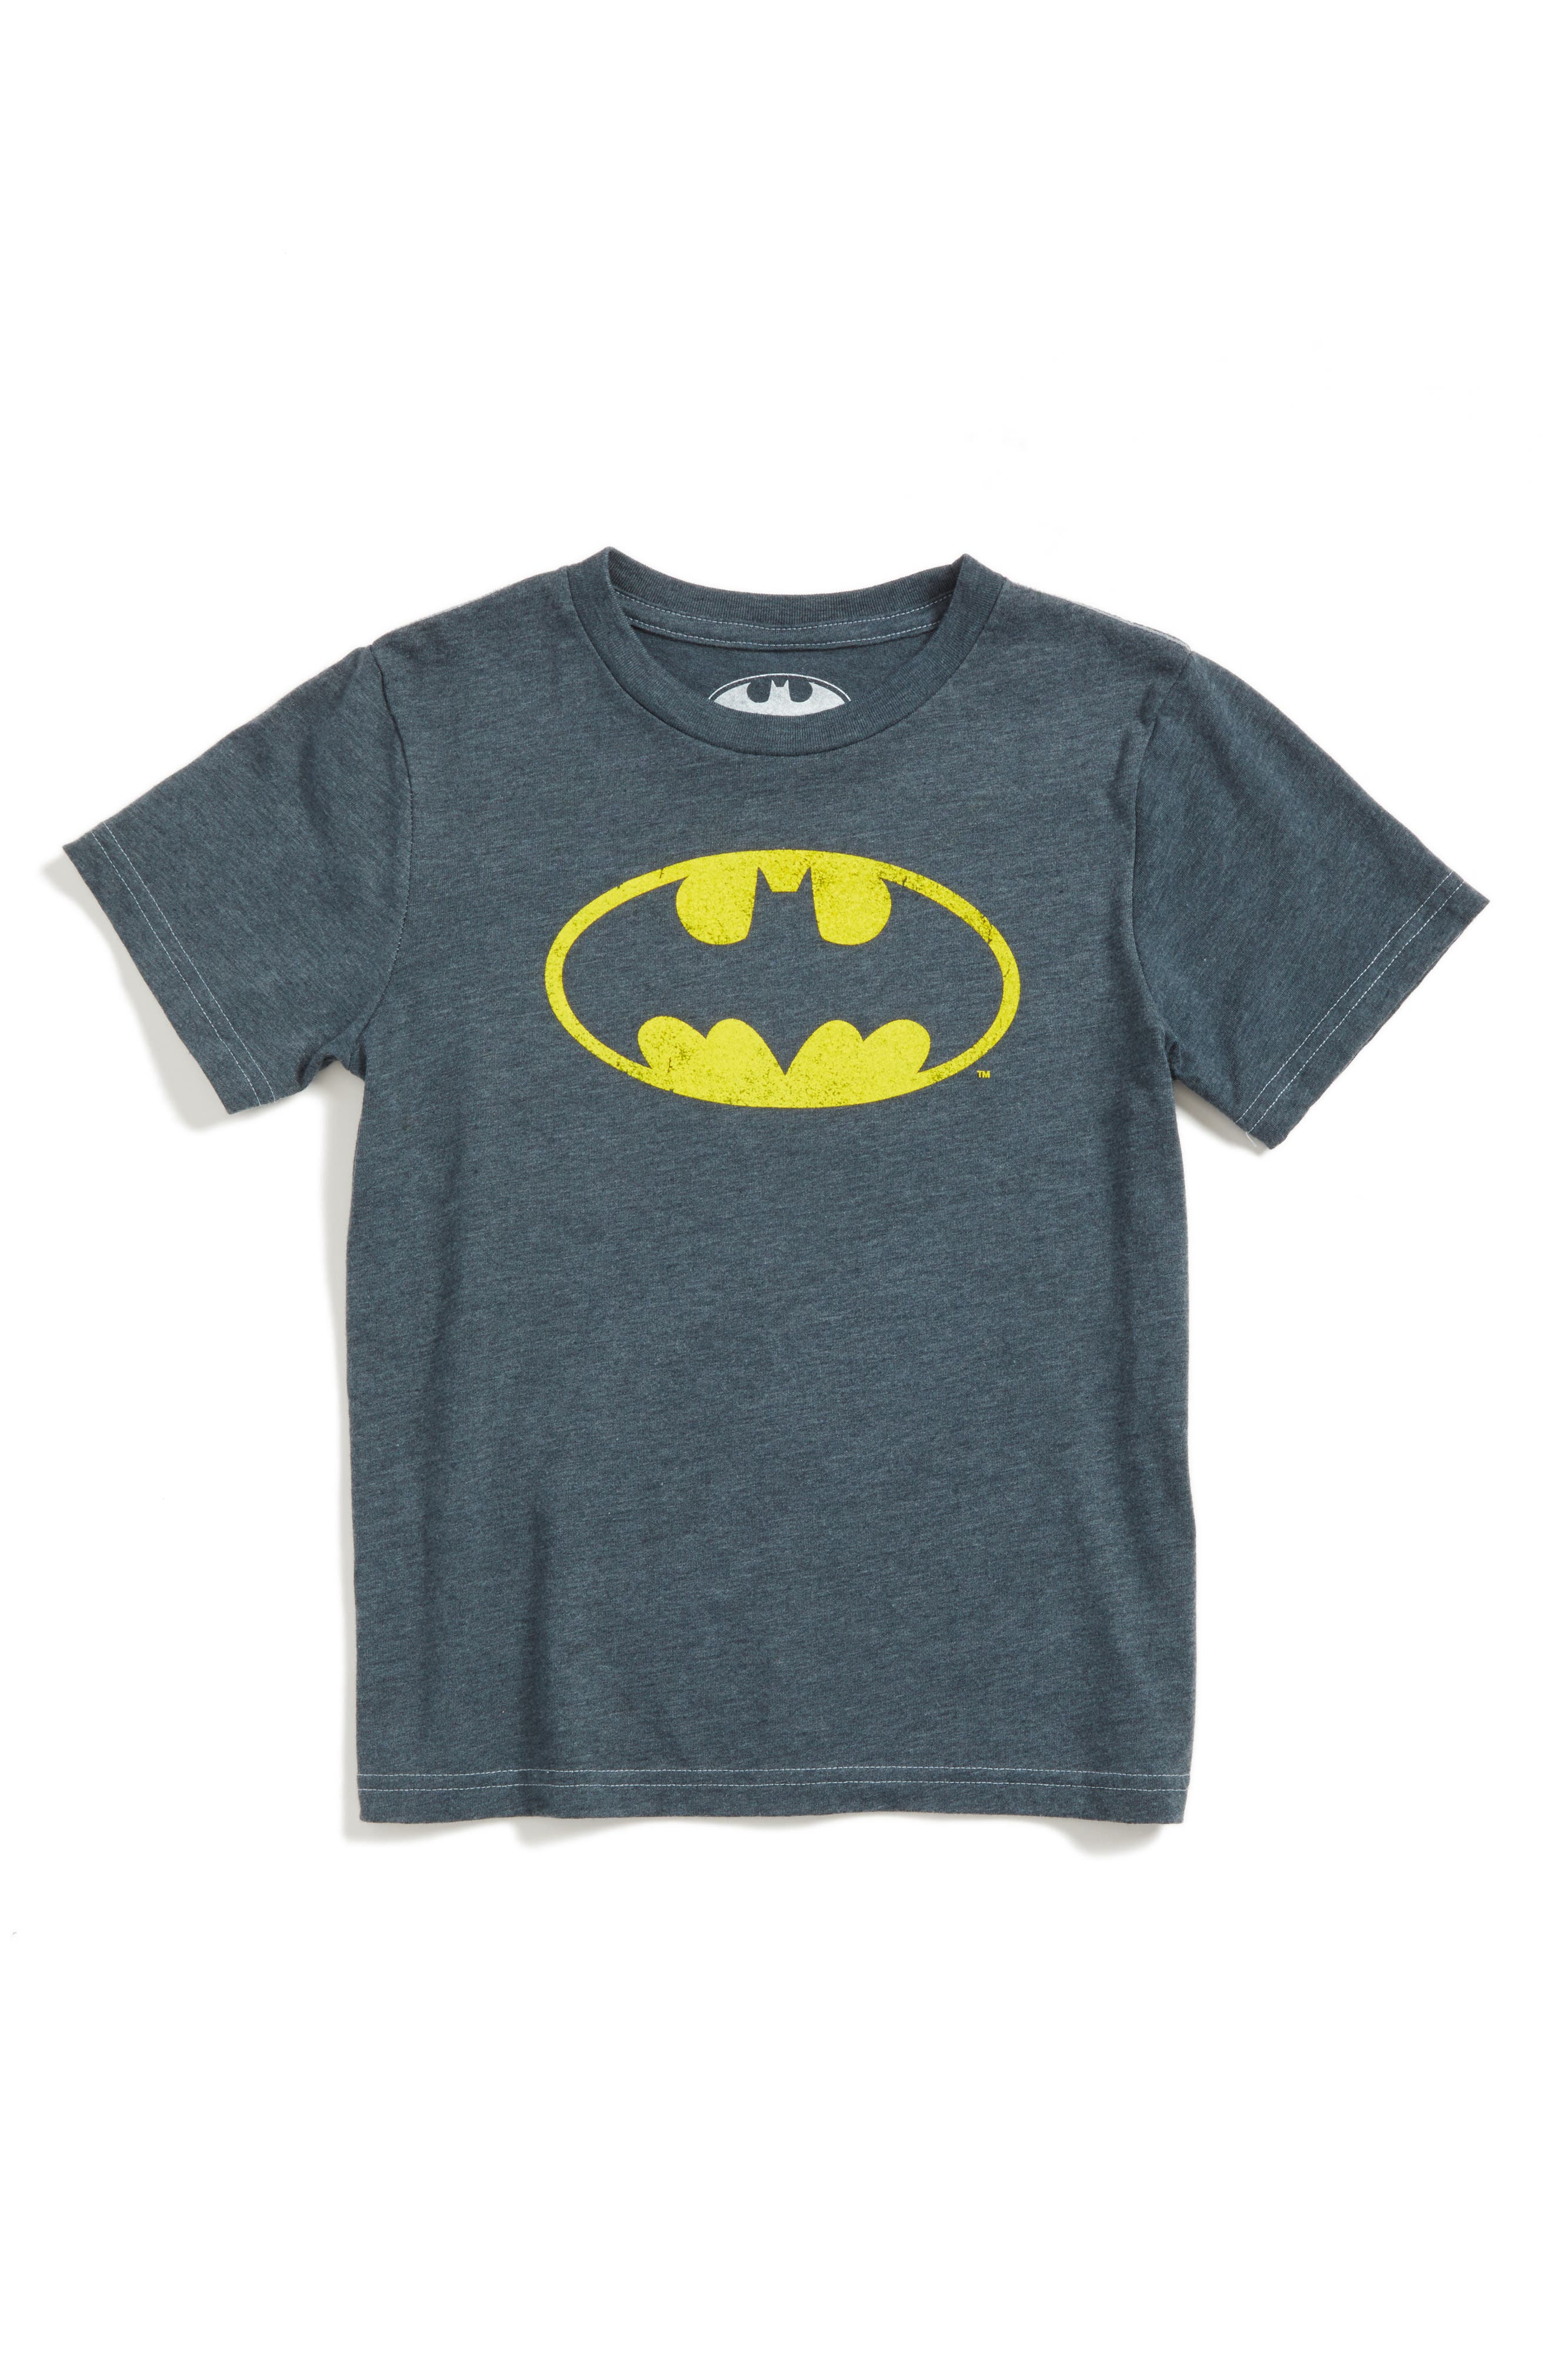 Jem Batman Graphic T-Shirt (Toddler Boys, Little Boys & Big Boys)